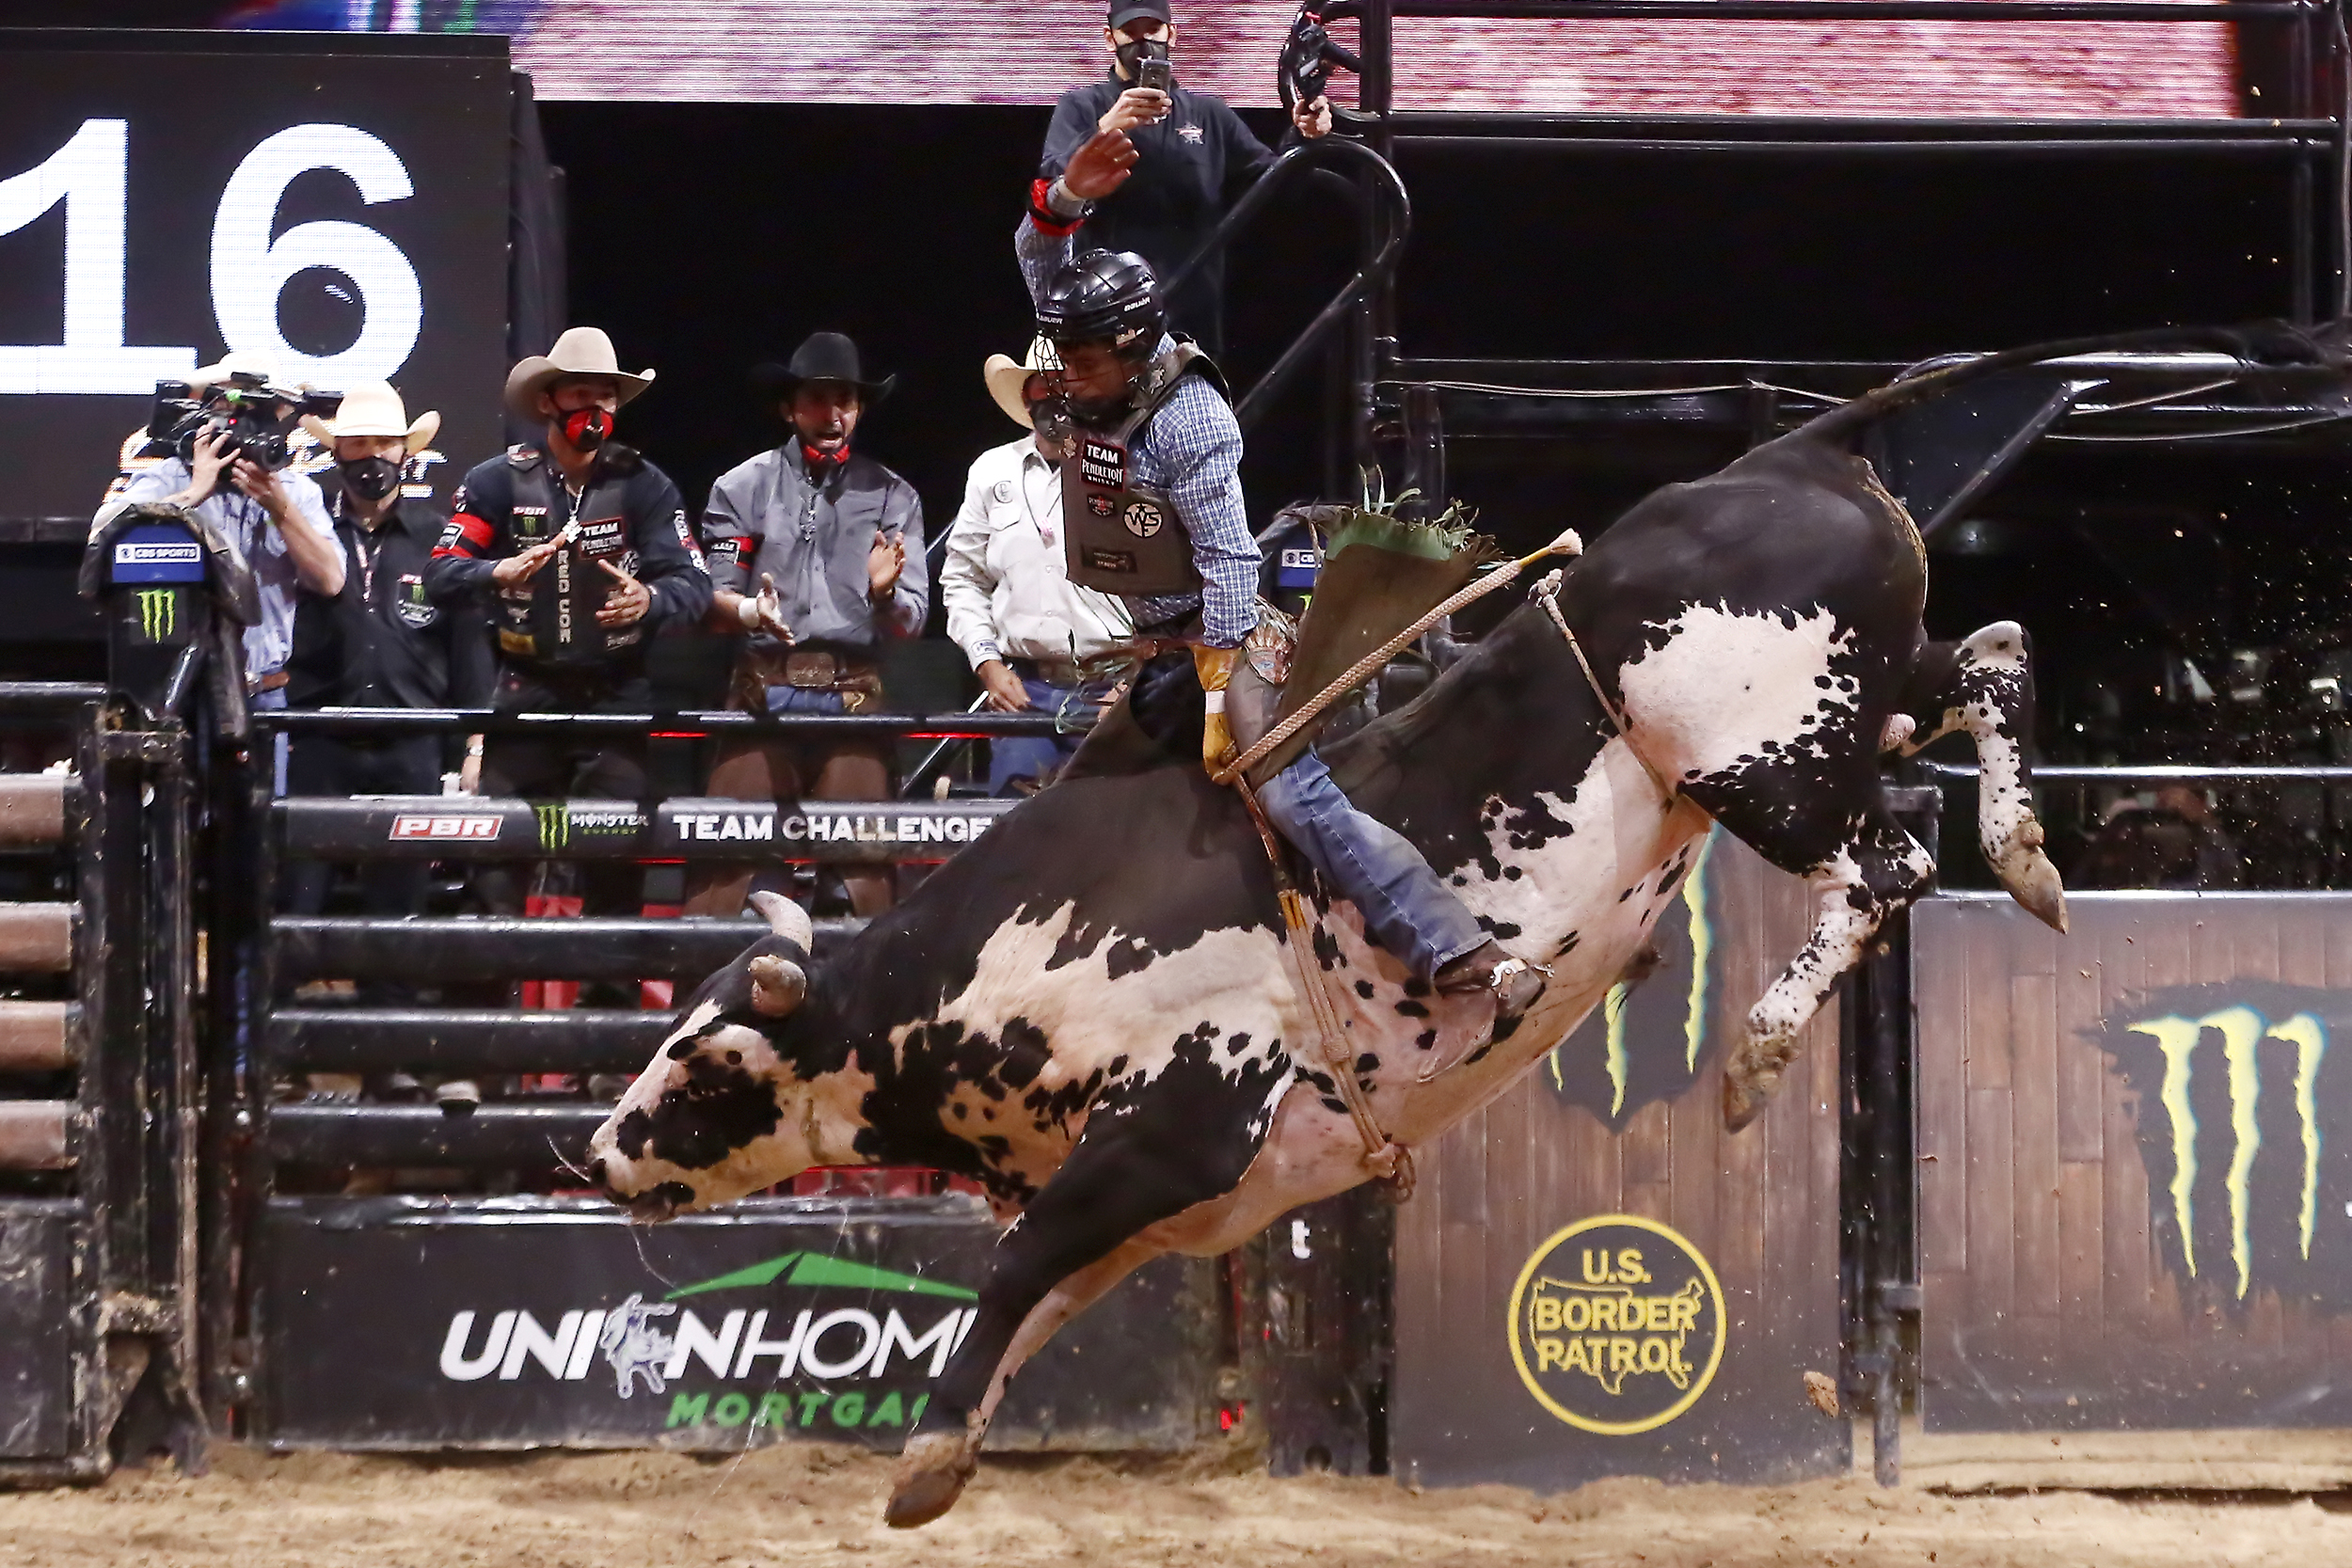 'Rising star' bull rider killed by animal at California competition